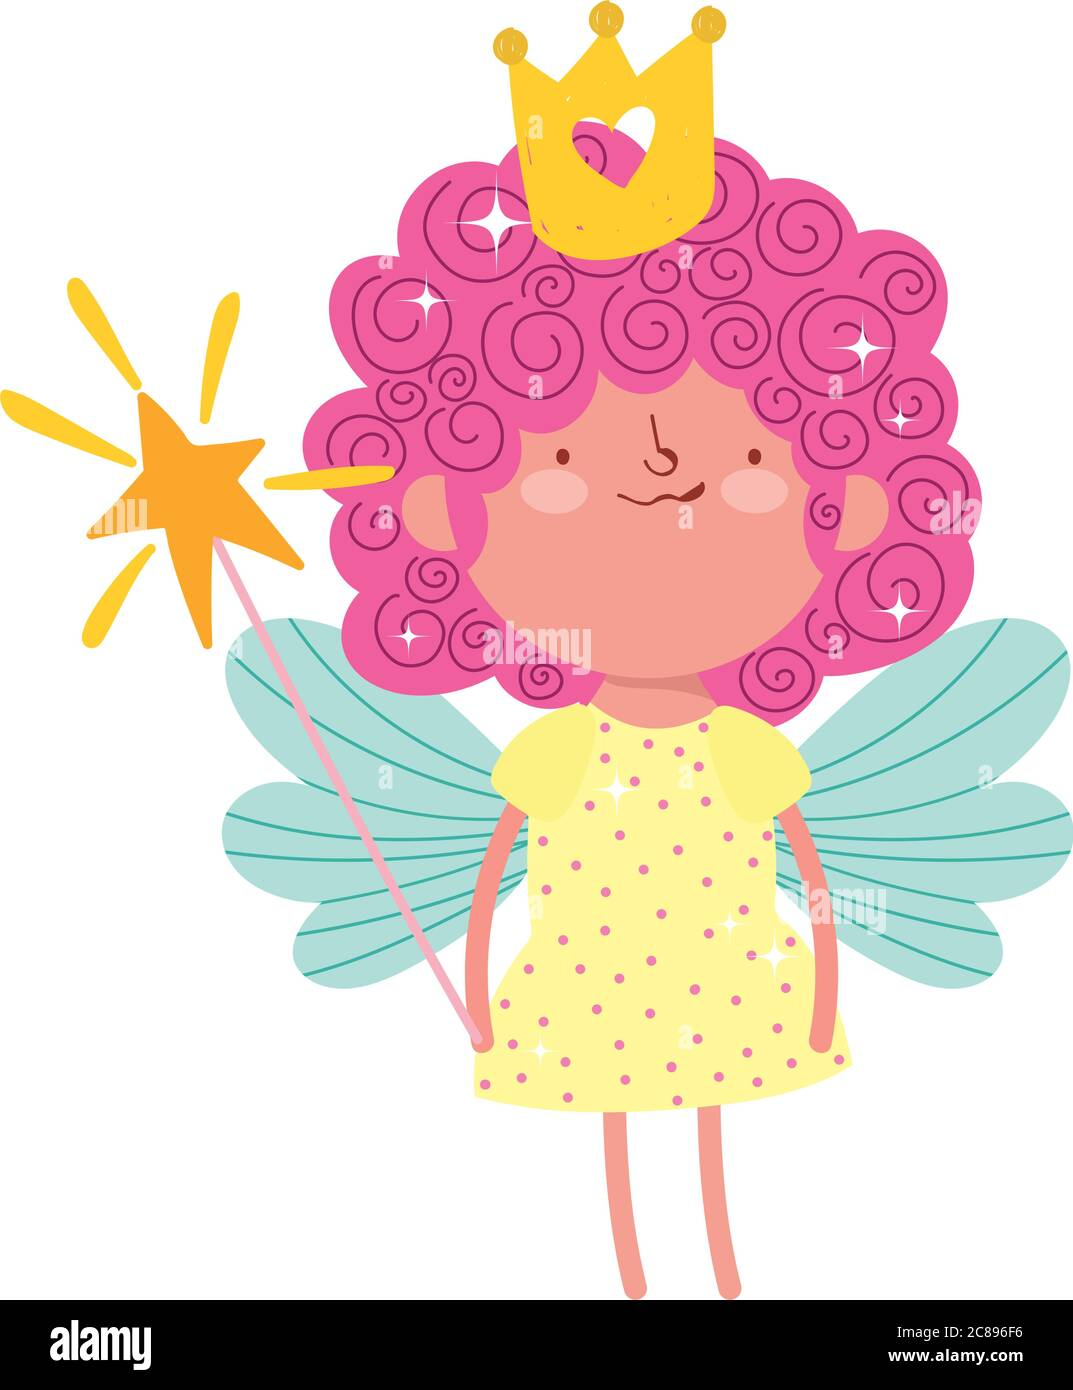 Cute Little Fairy With Magic Wand And Crown Cartoon Isolated Icon Design Vector Illustration Stock Vector Image Art Alamy Choose from 690+ cartoon crown graphic resources and download in the form of png, eps, ai or psd. alamy